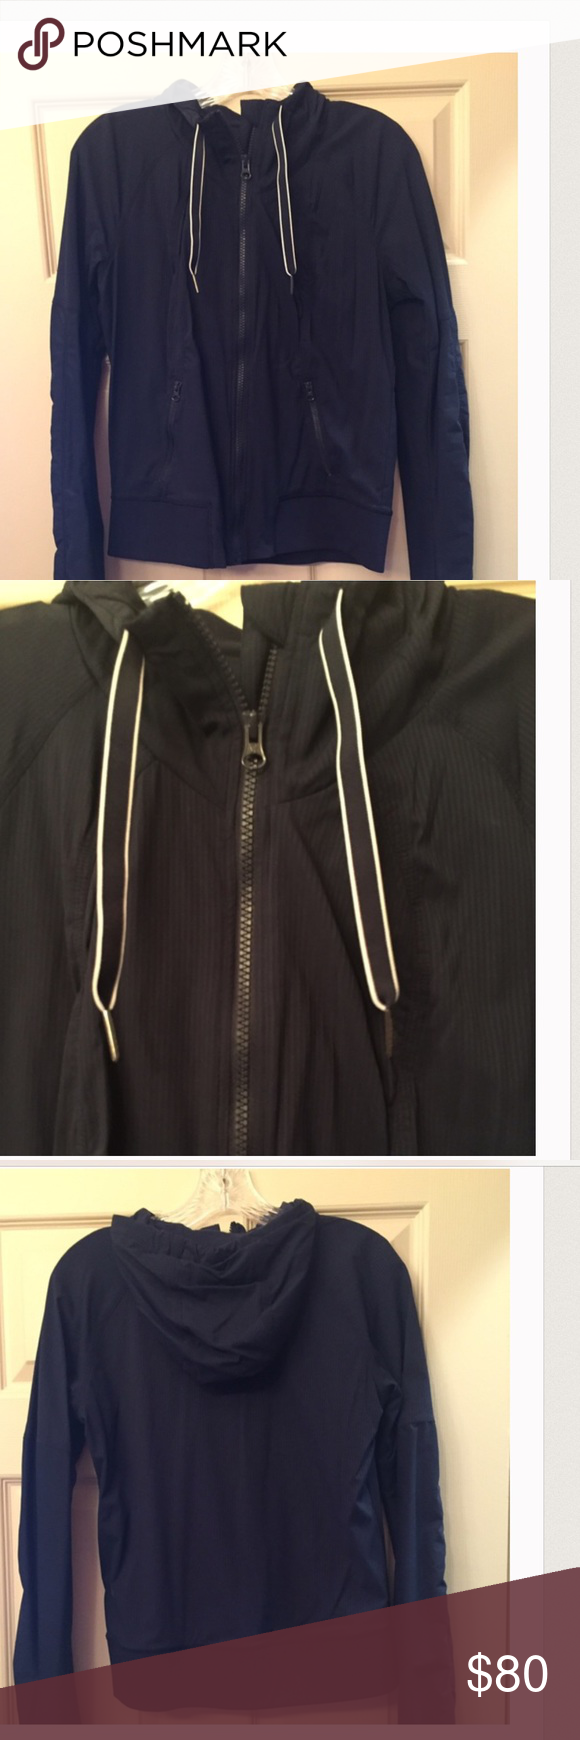 Re-poshing!!!  Lululemon navy Jacket!  Size 4 I bought from another posher. Good condition and lightweight materials!   No trade!  Make me  a reasonable offer! lululemon athletica Jackets & Coats